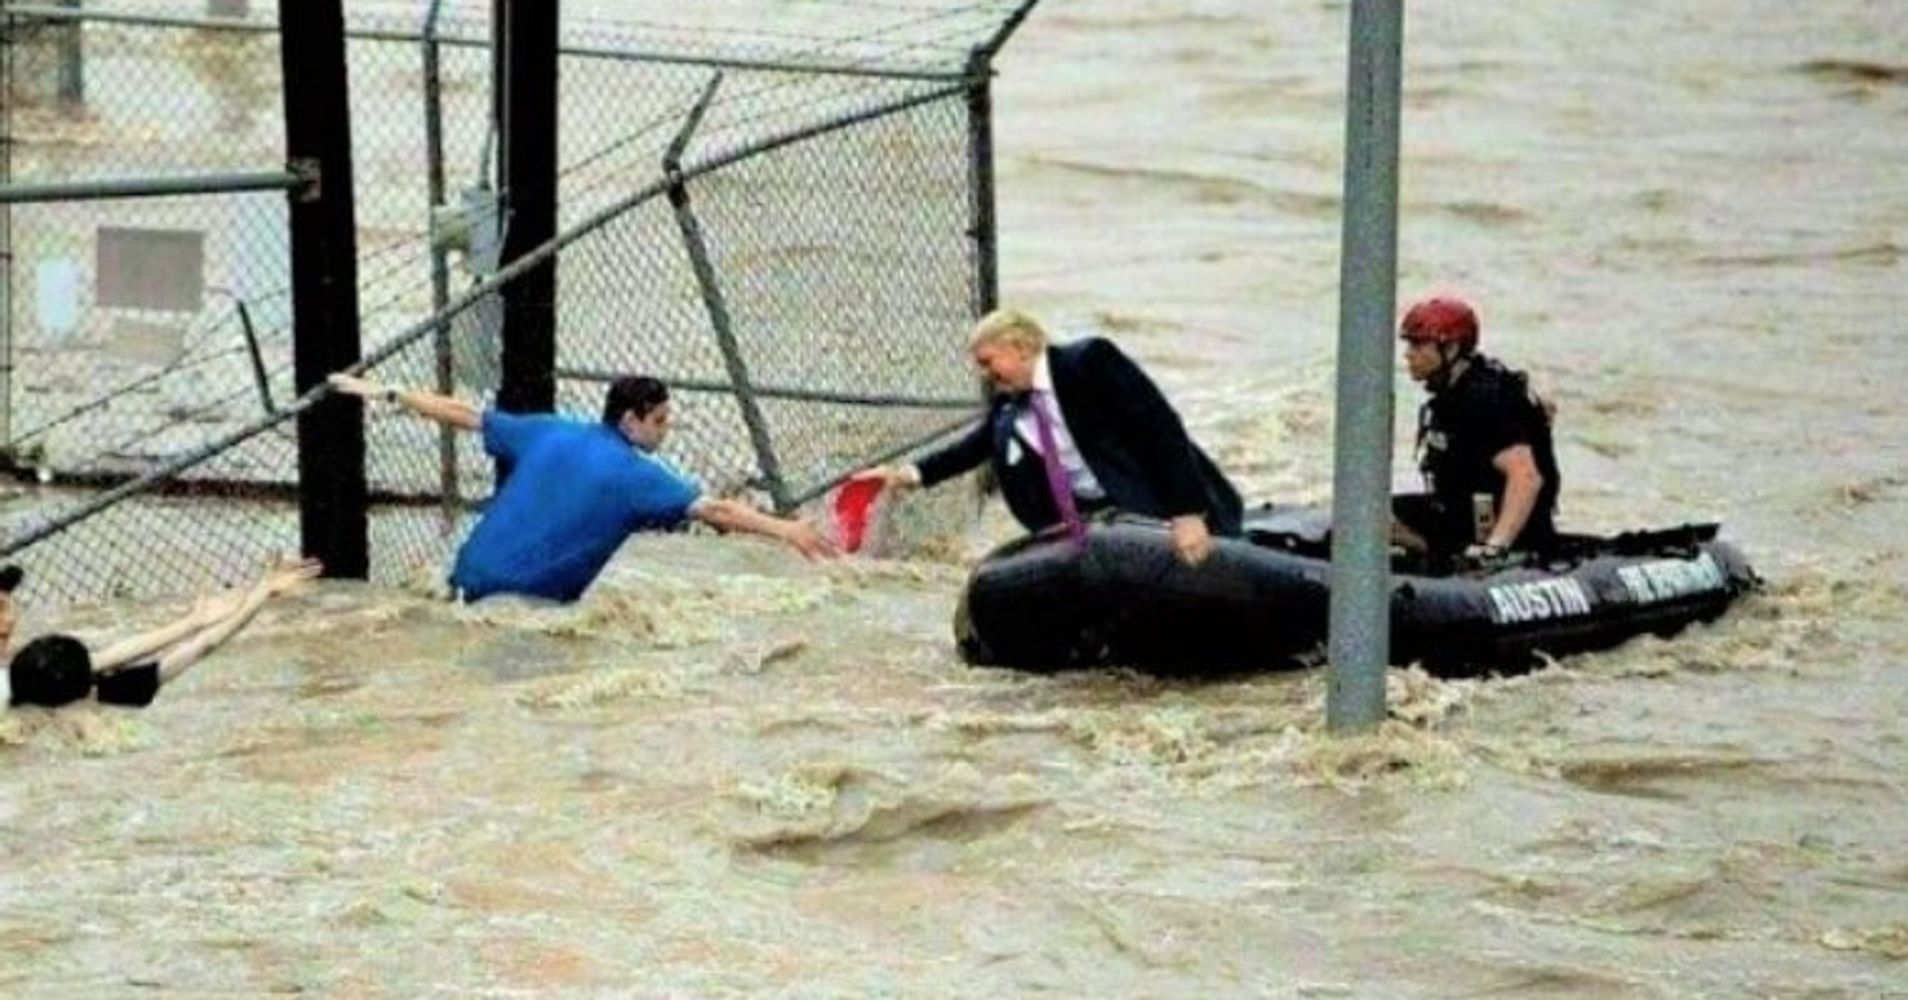 Fake Photo Of Trump 'Rescuing' Flood Victims Goes Viral | HuffPost